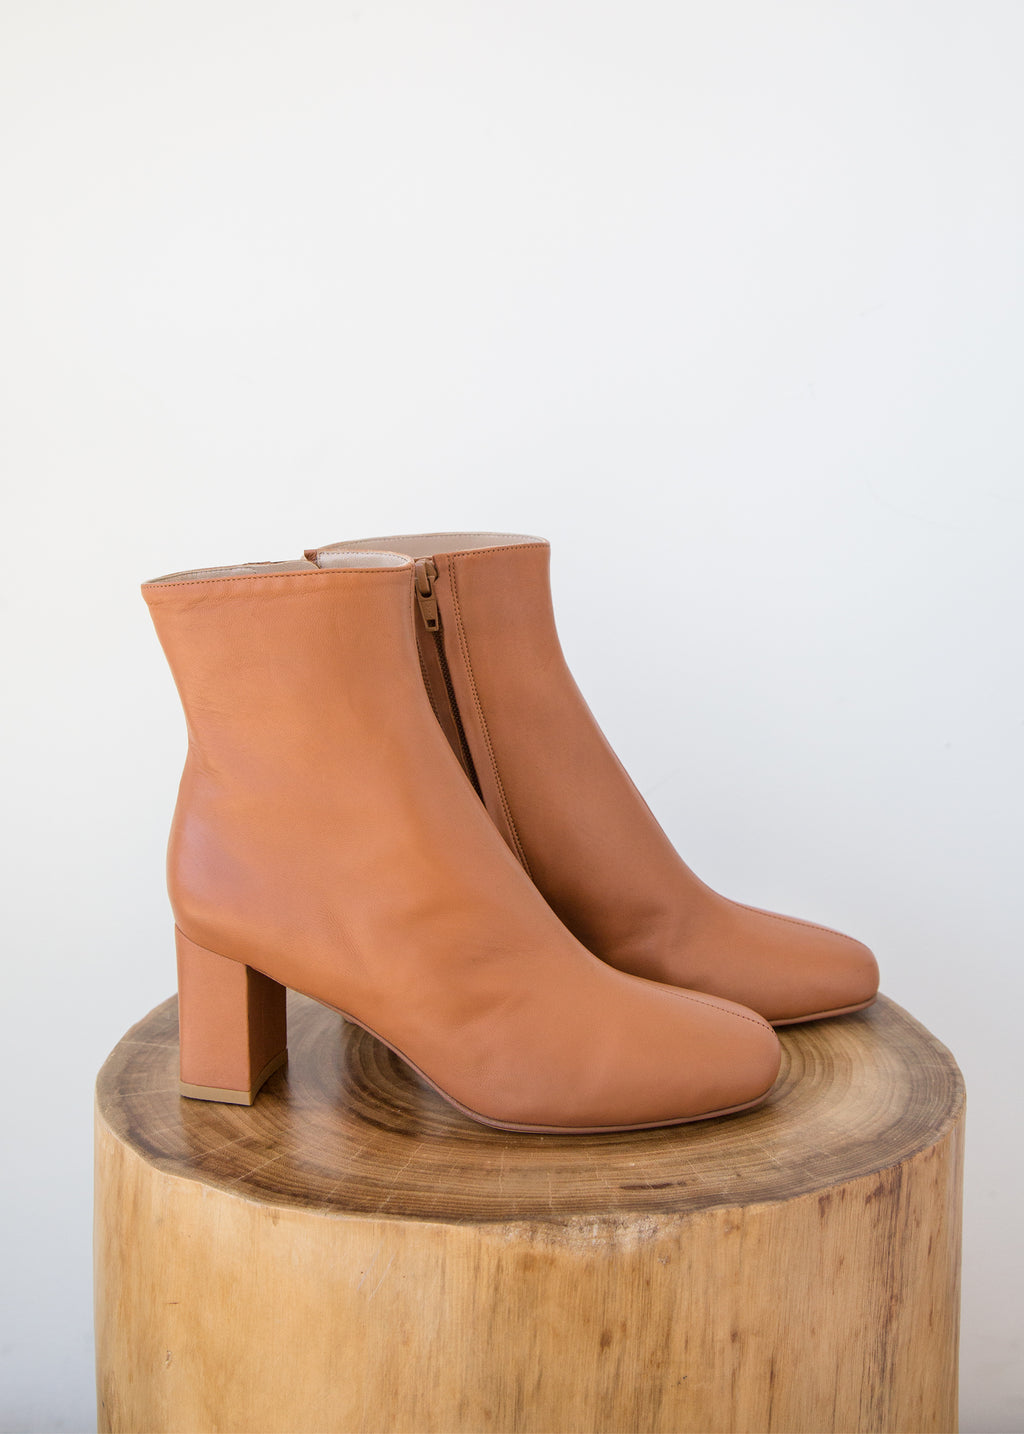 Maryam Nassir Zadeh Agnes Boot Oak Calf